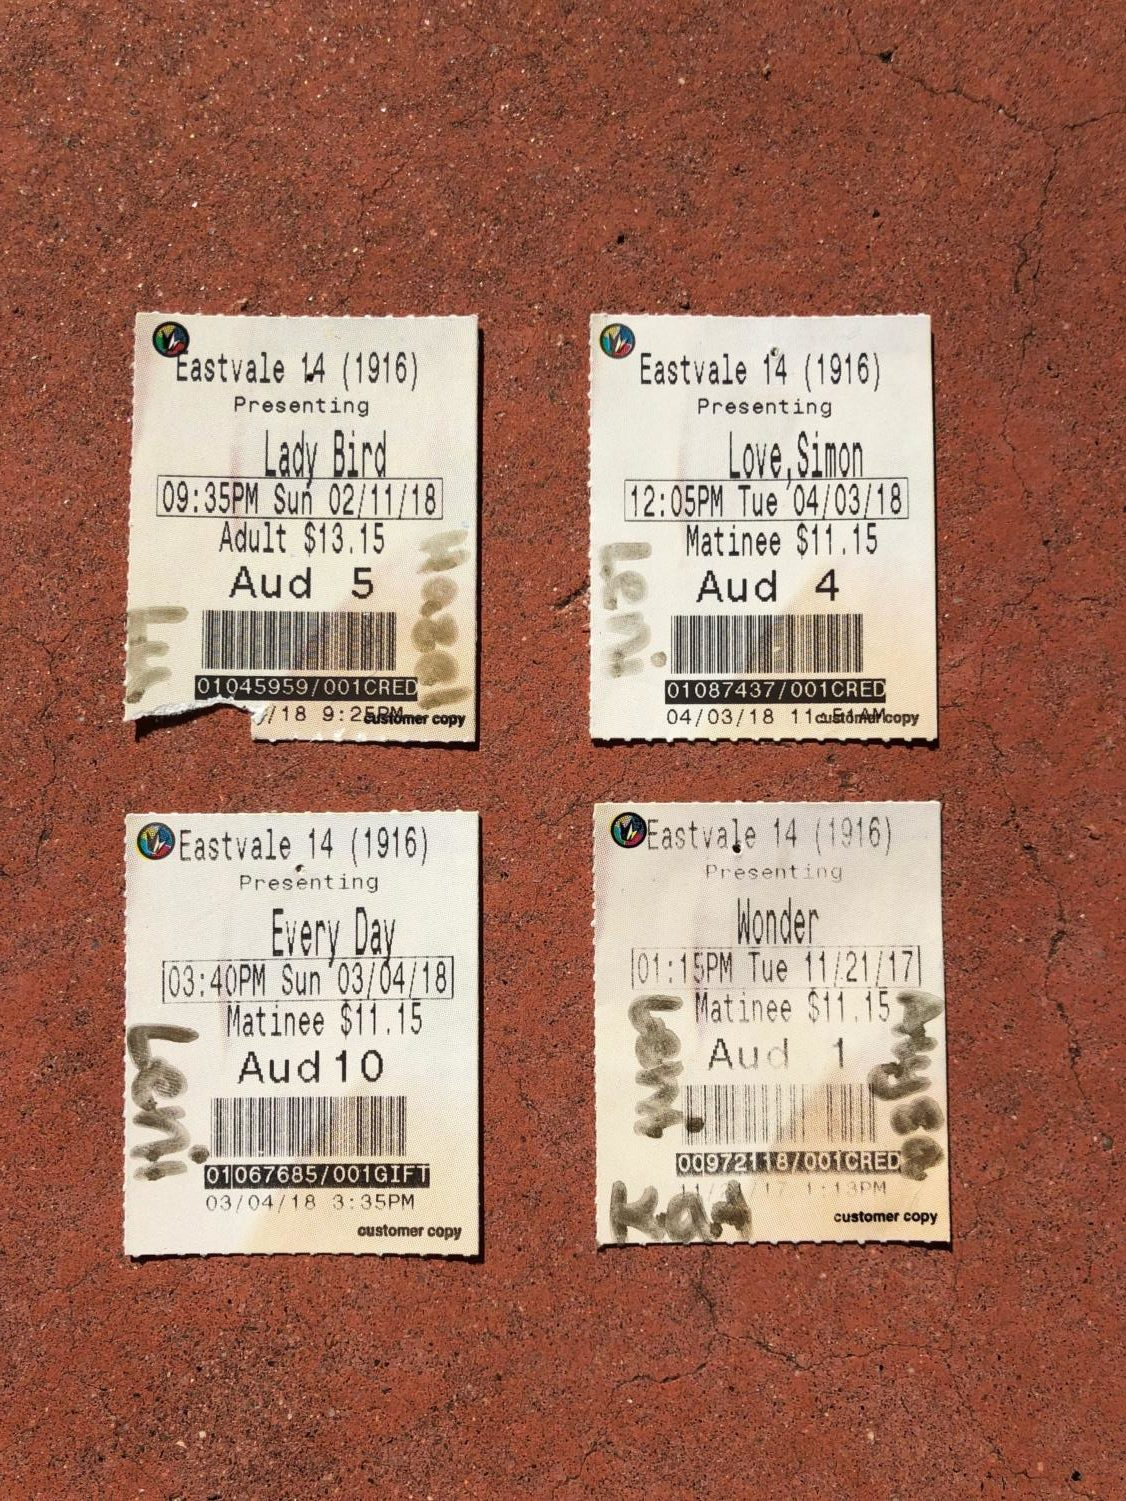 Small portion of collected movie stubs from 2017-2018